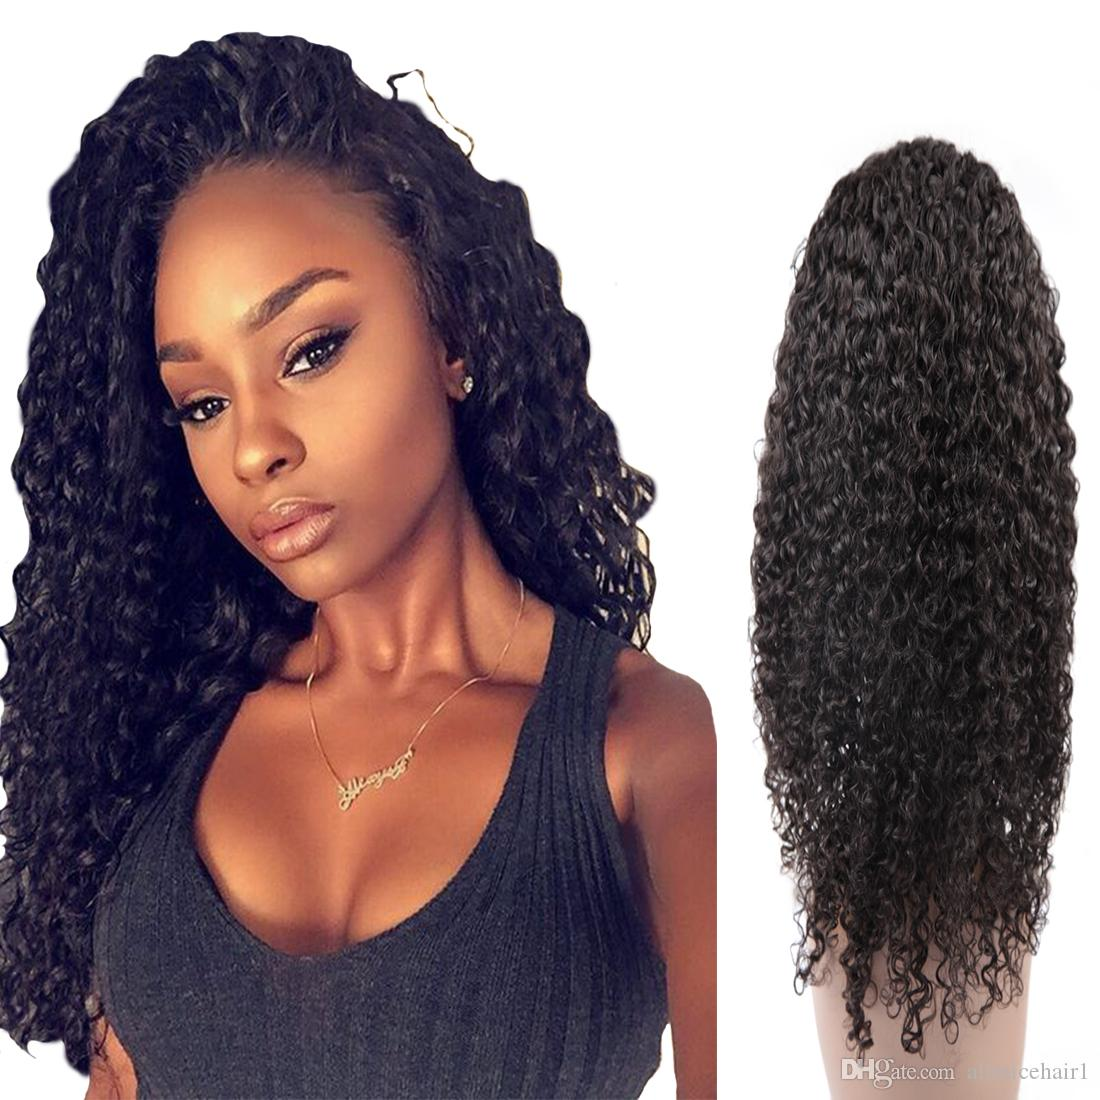 Human Hair Wigs 360 Lace Front Brazilian Curly Wave Soft Hair Deep Wave  Lace Front Wigs For Black Women Remy Full Lace Wig Full Lace Wigs Canada  From ... 8a9fc13394